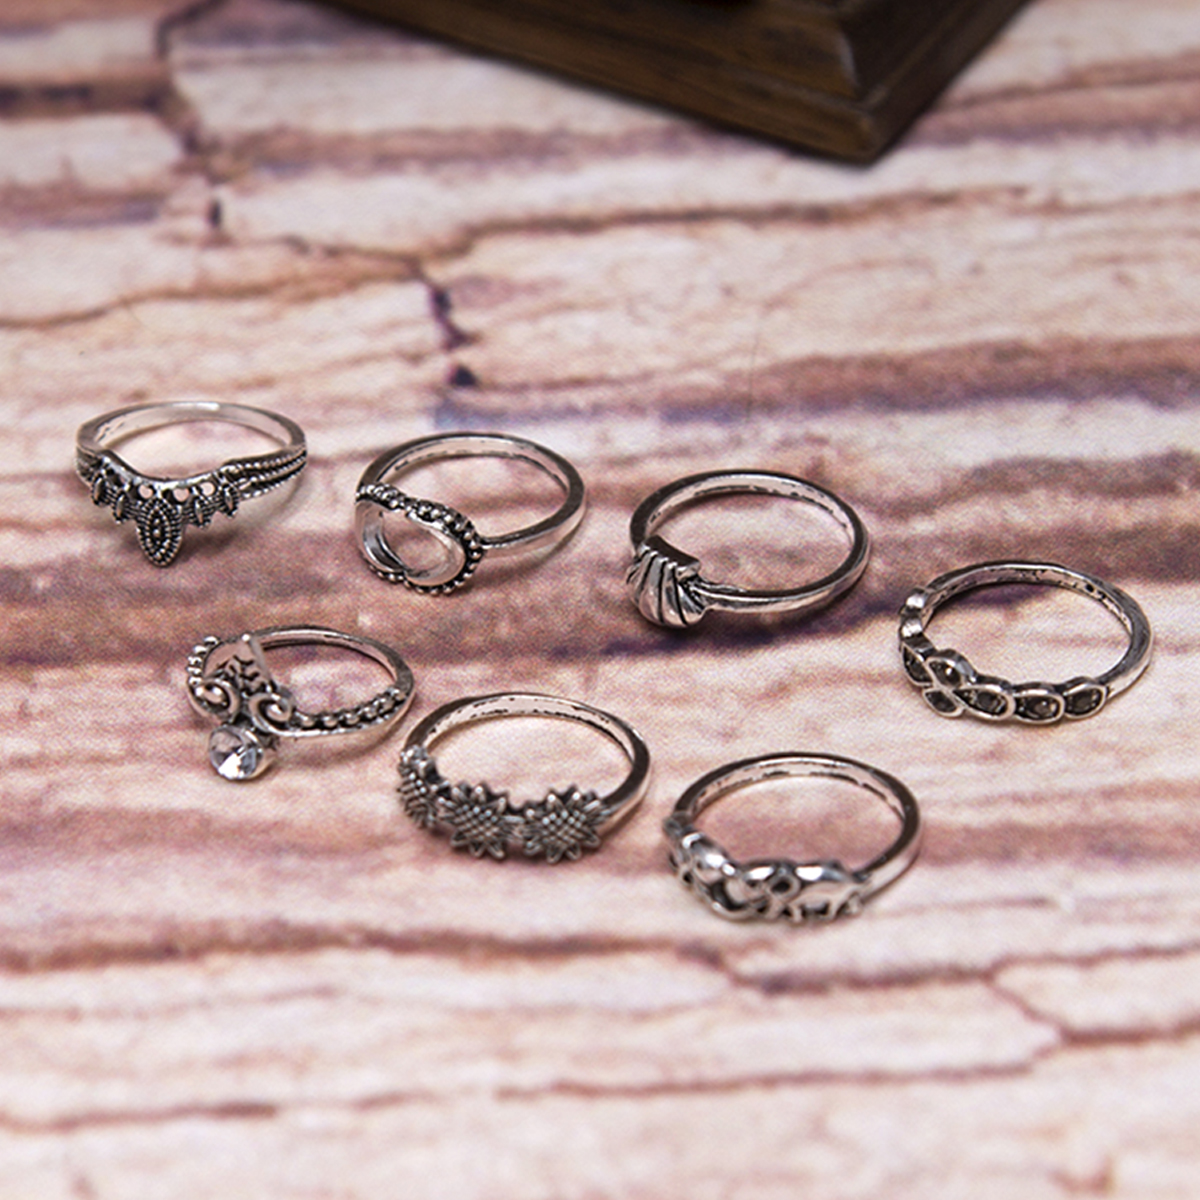 7Pcs Boho Style Hollow Out Rings Set Trendy Bohemian Spiral Gem ...